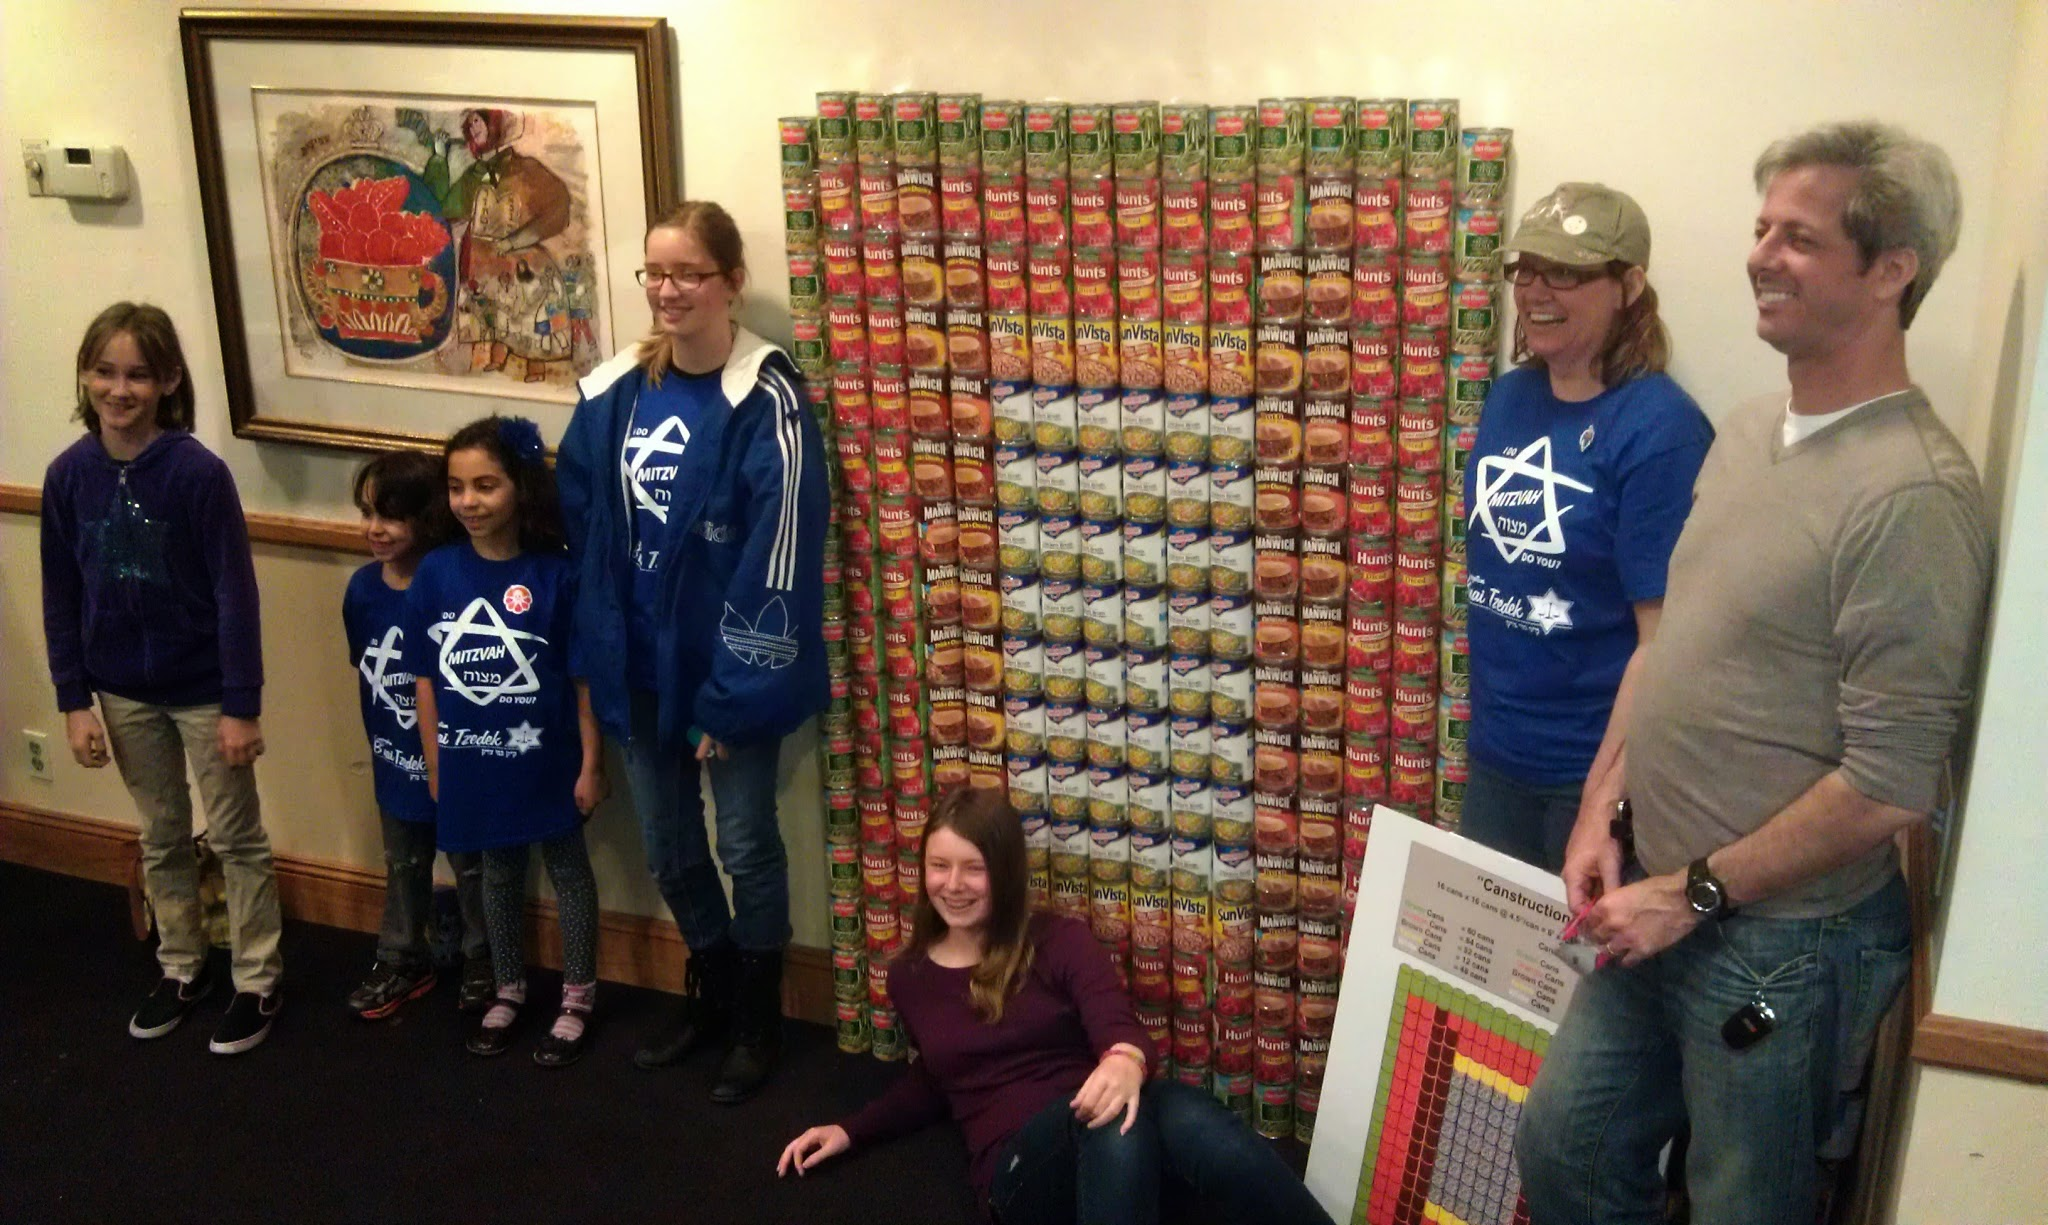 MD2014 Canstruction